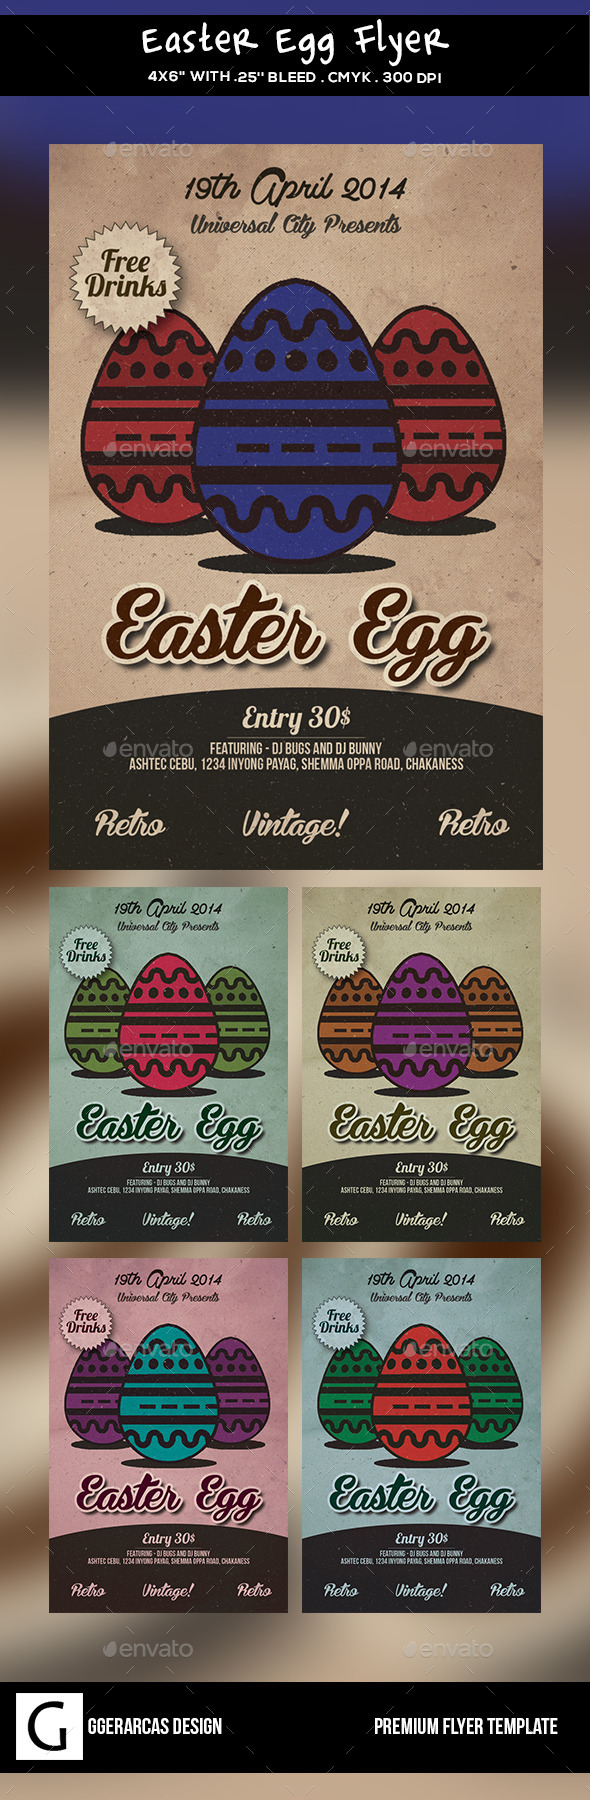 GraphicRiver Easter Egg Flyer 10246499